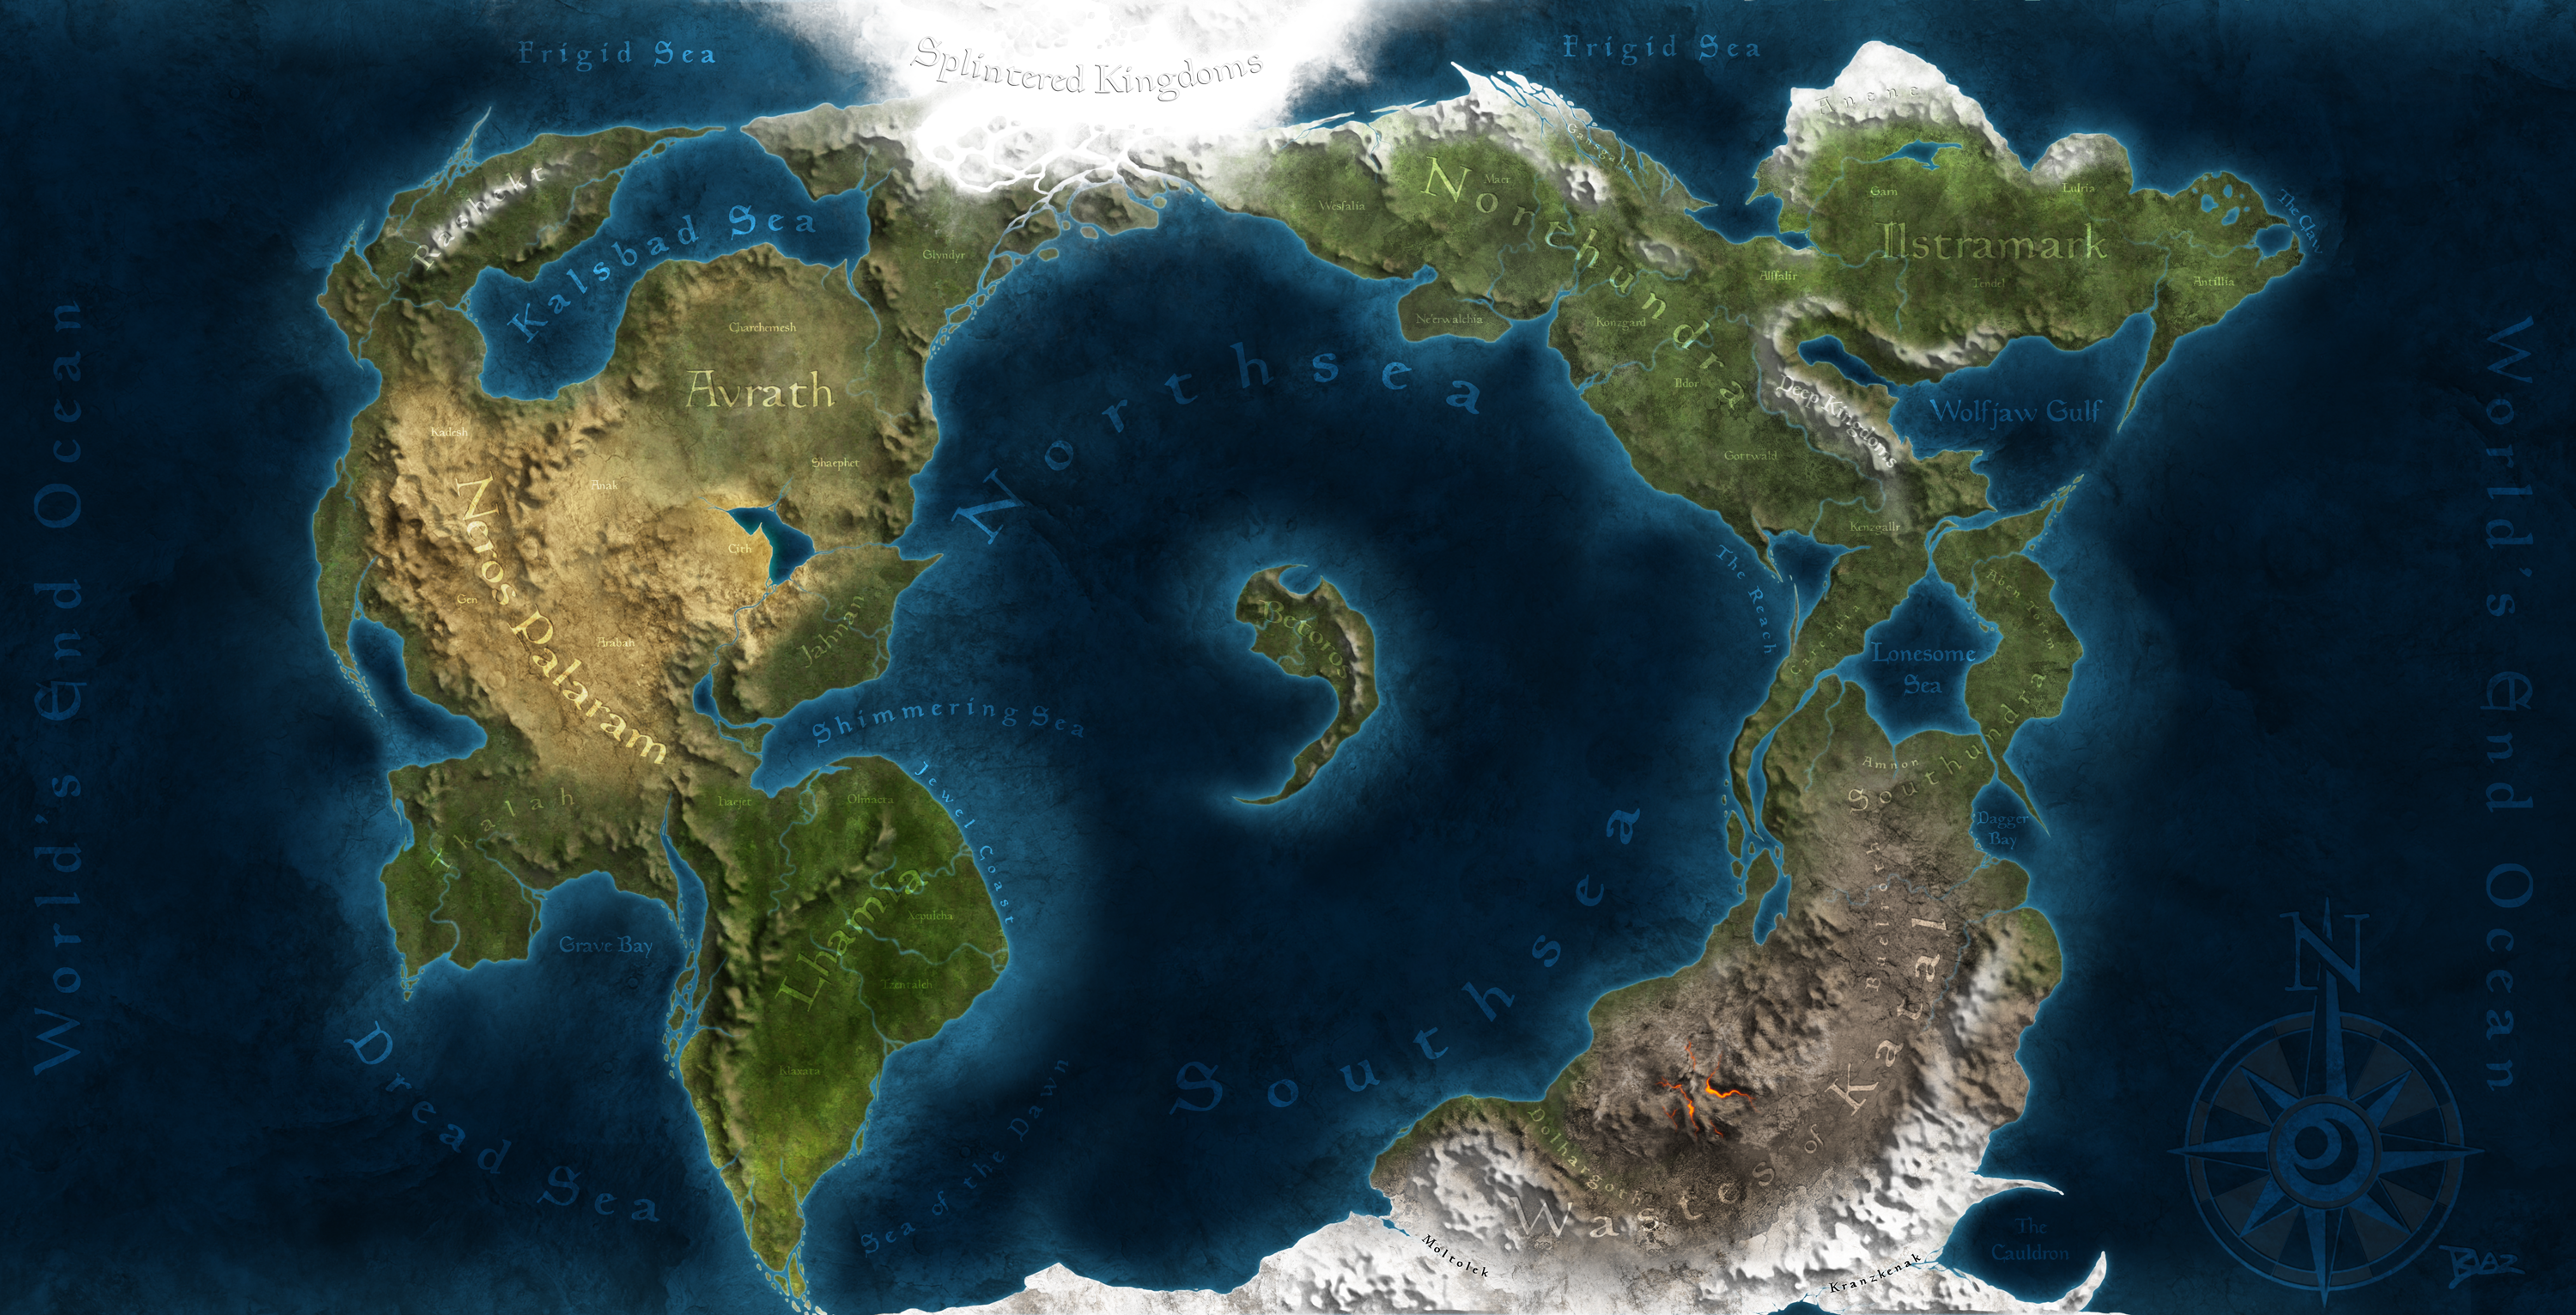 World Map Generator Dnd: Maps & Projections – Quotes of the Day